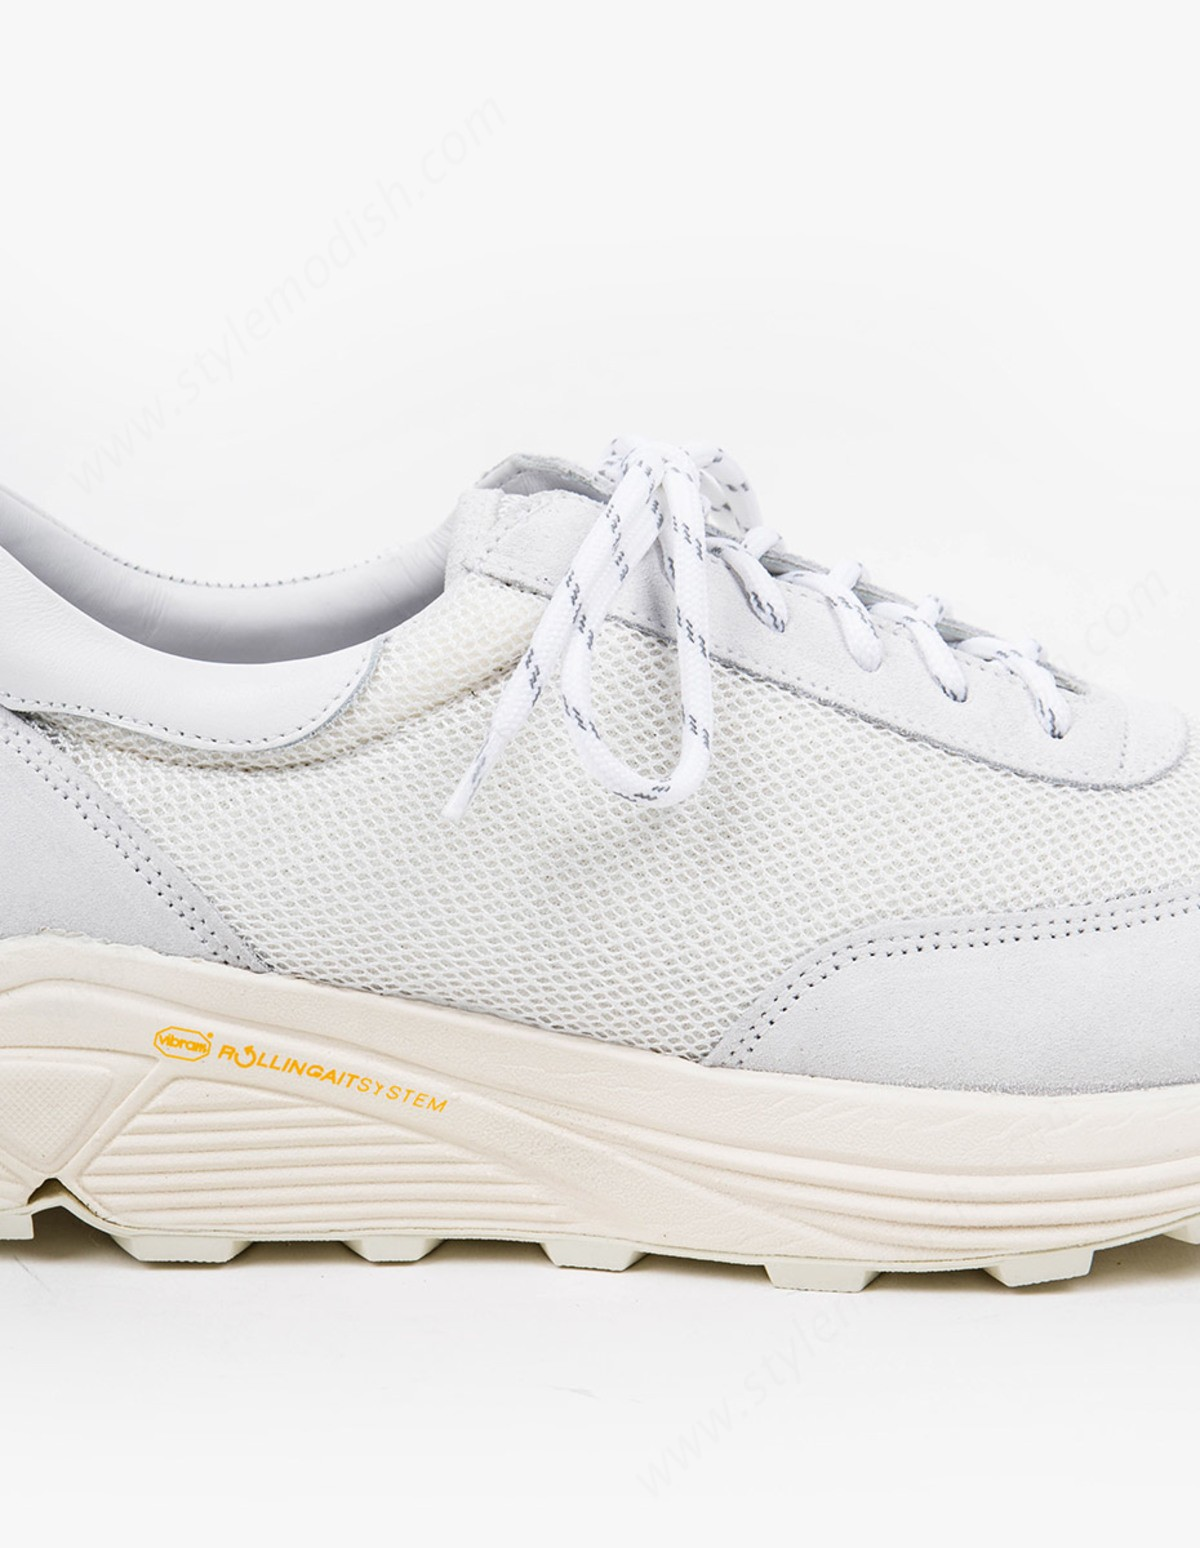 Mens's Our Legacy Mono Runner - White Trainers & Trainers - -4